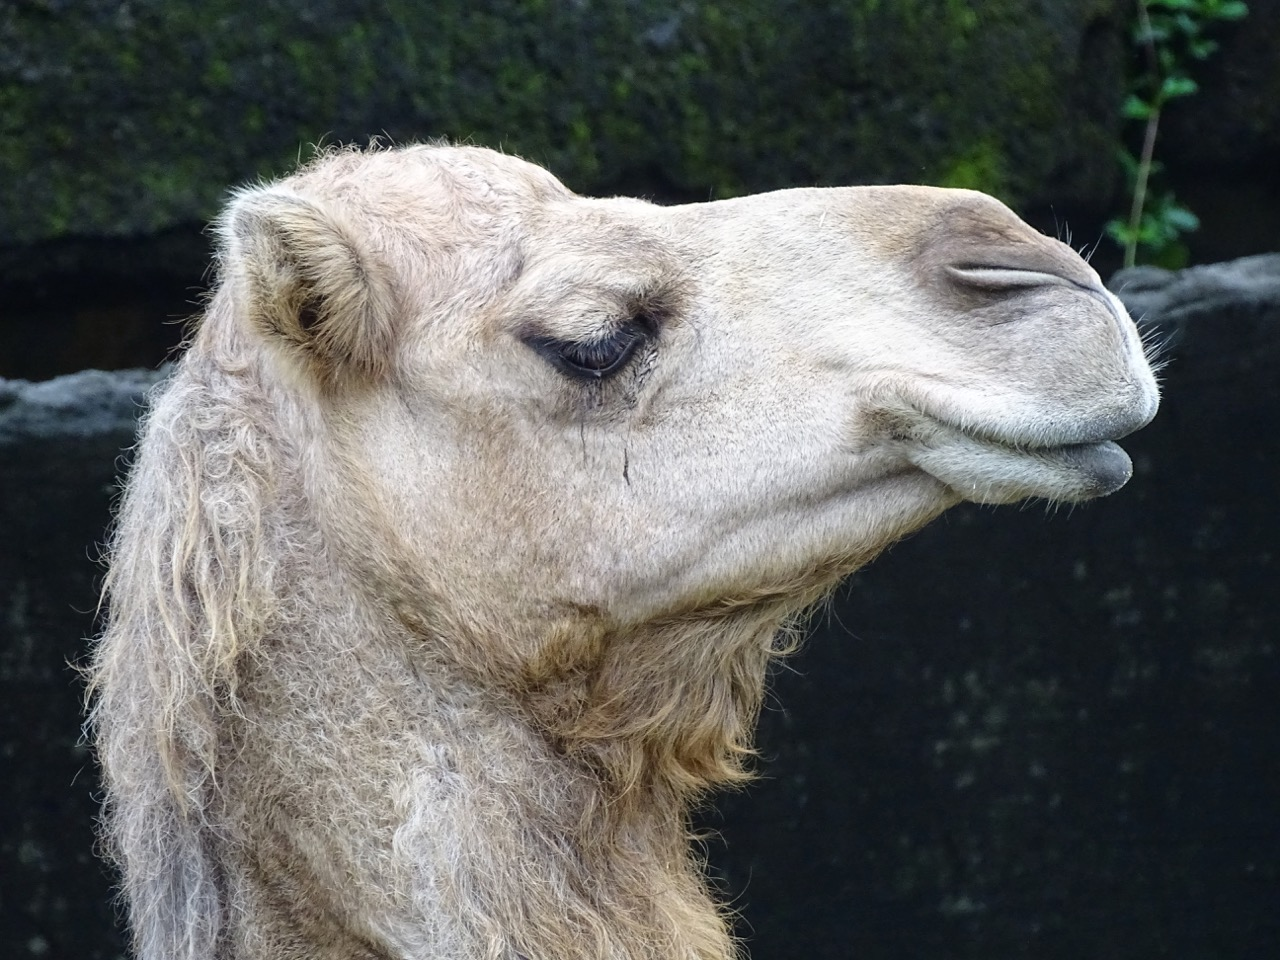 Camel at Taipei Zoo